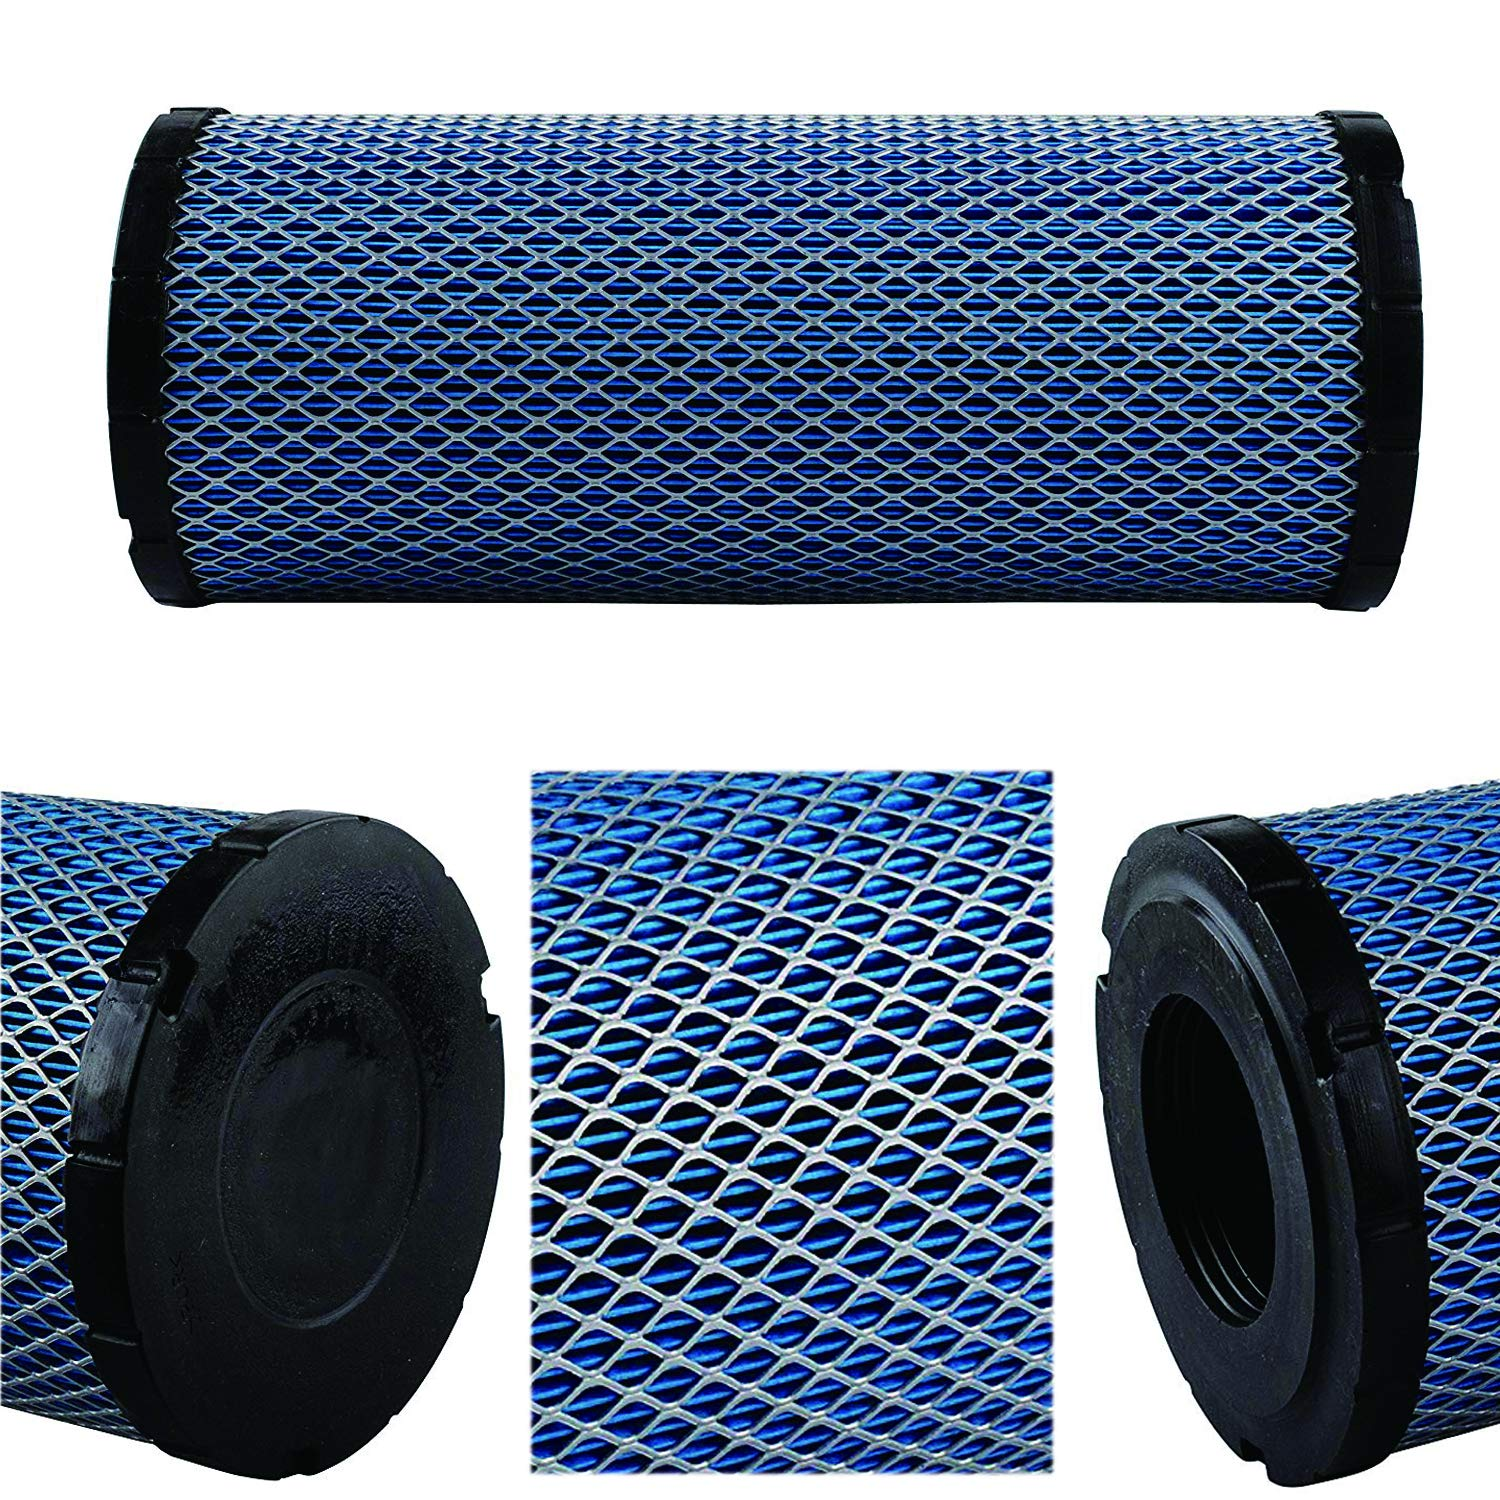 7082115 Air Filter Replacement Compatible with Polaris ACE 900, General 1000, General 4 1000, RZR 4 900, RZR 900, RZR S 1000 2015-2018 by Wddby (Image #2)